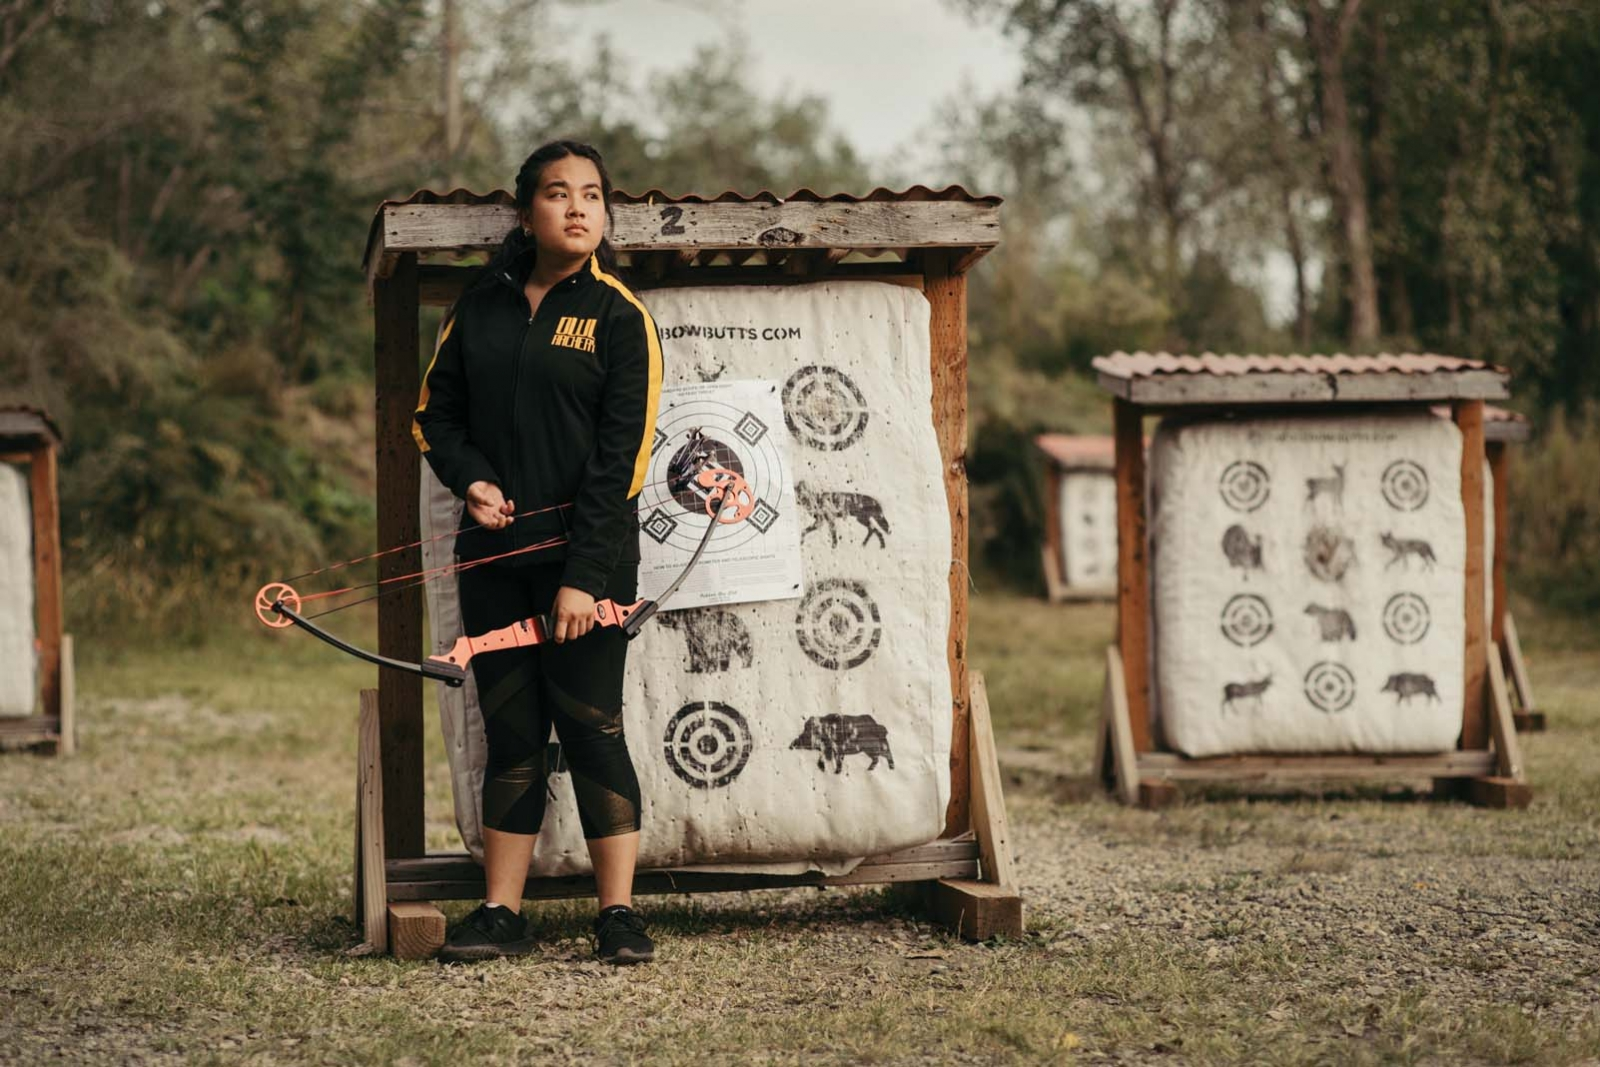 Emily Yang grips a compound bow at Pig's Eye Archery Range in St. Paul.